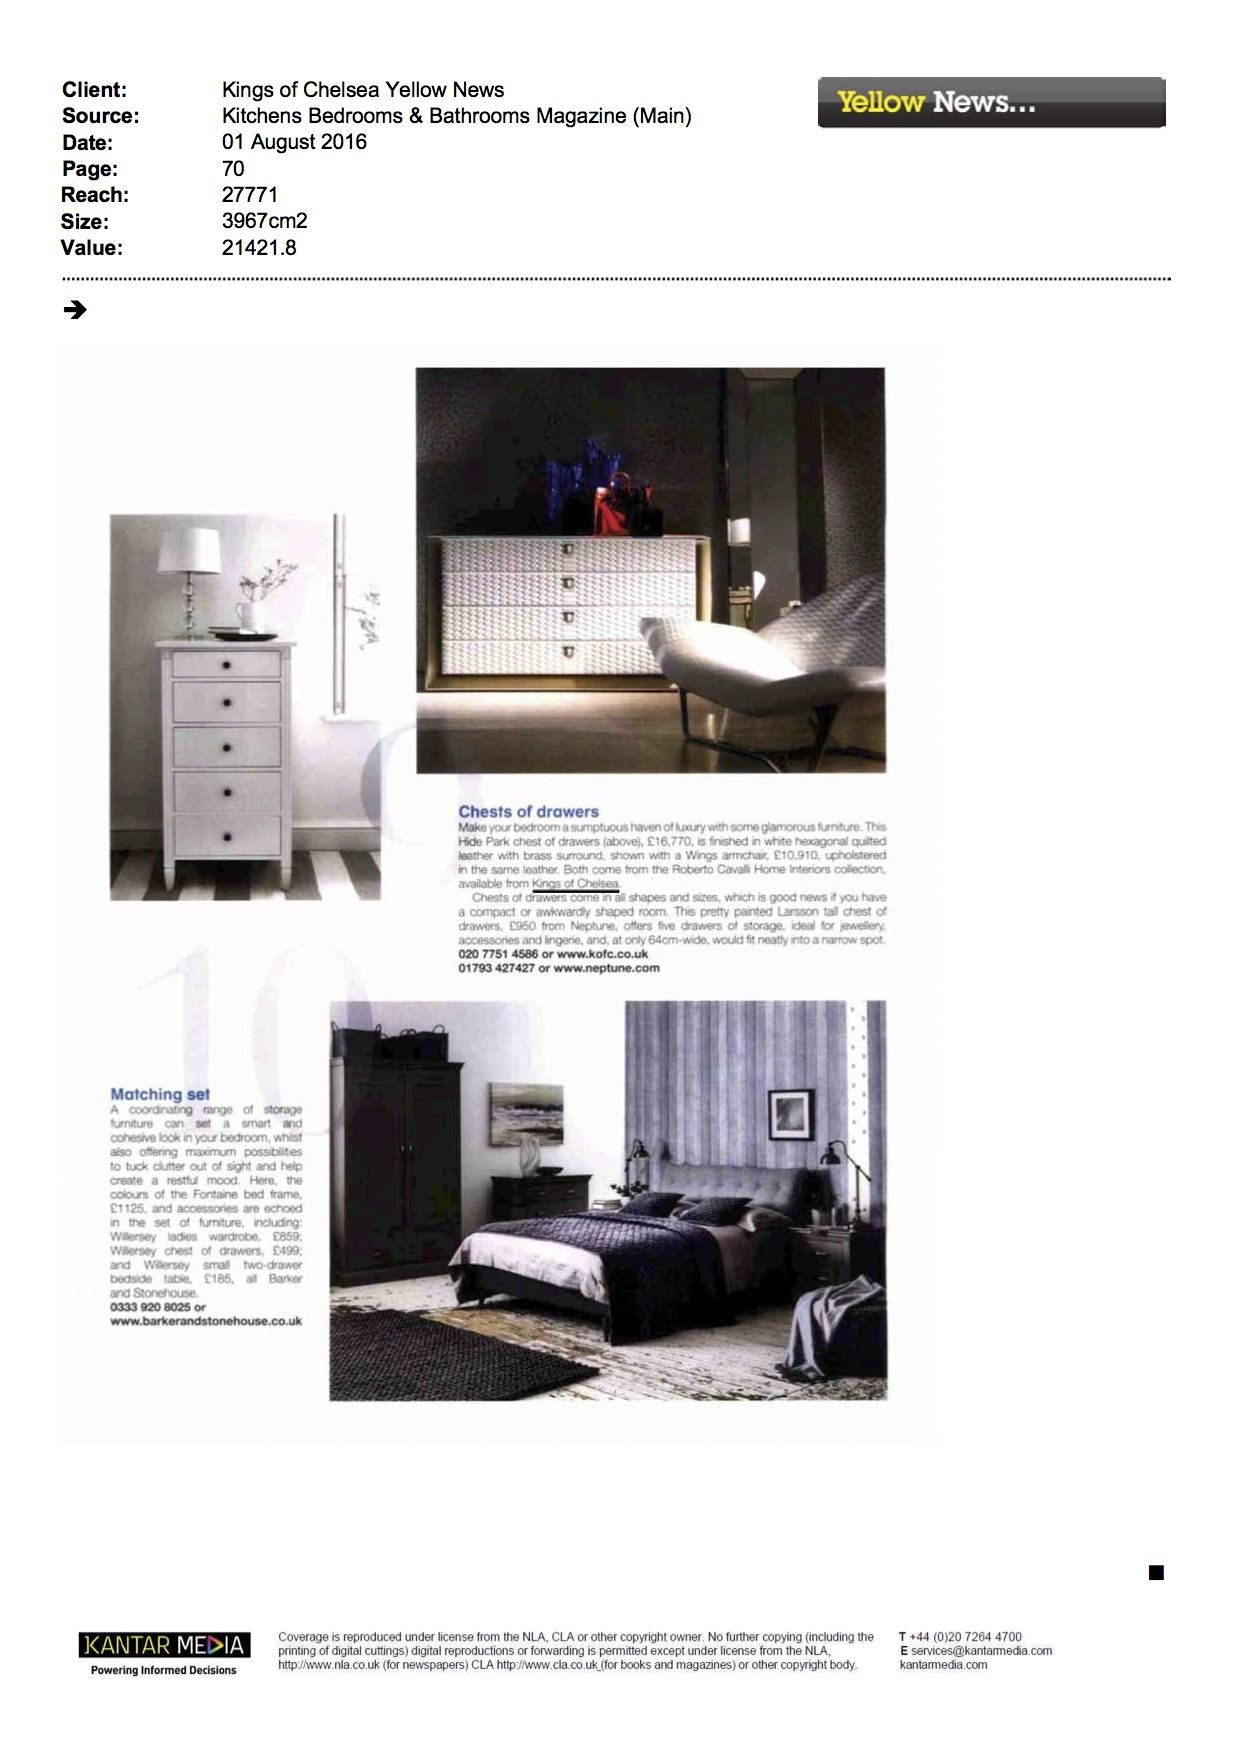 0e2e1ce8fb030 Kitchens Bedrooms   Bathrooms Magazine covering Kings of Chelsea. Includes  the Roberto Cavalli Wings Armchair